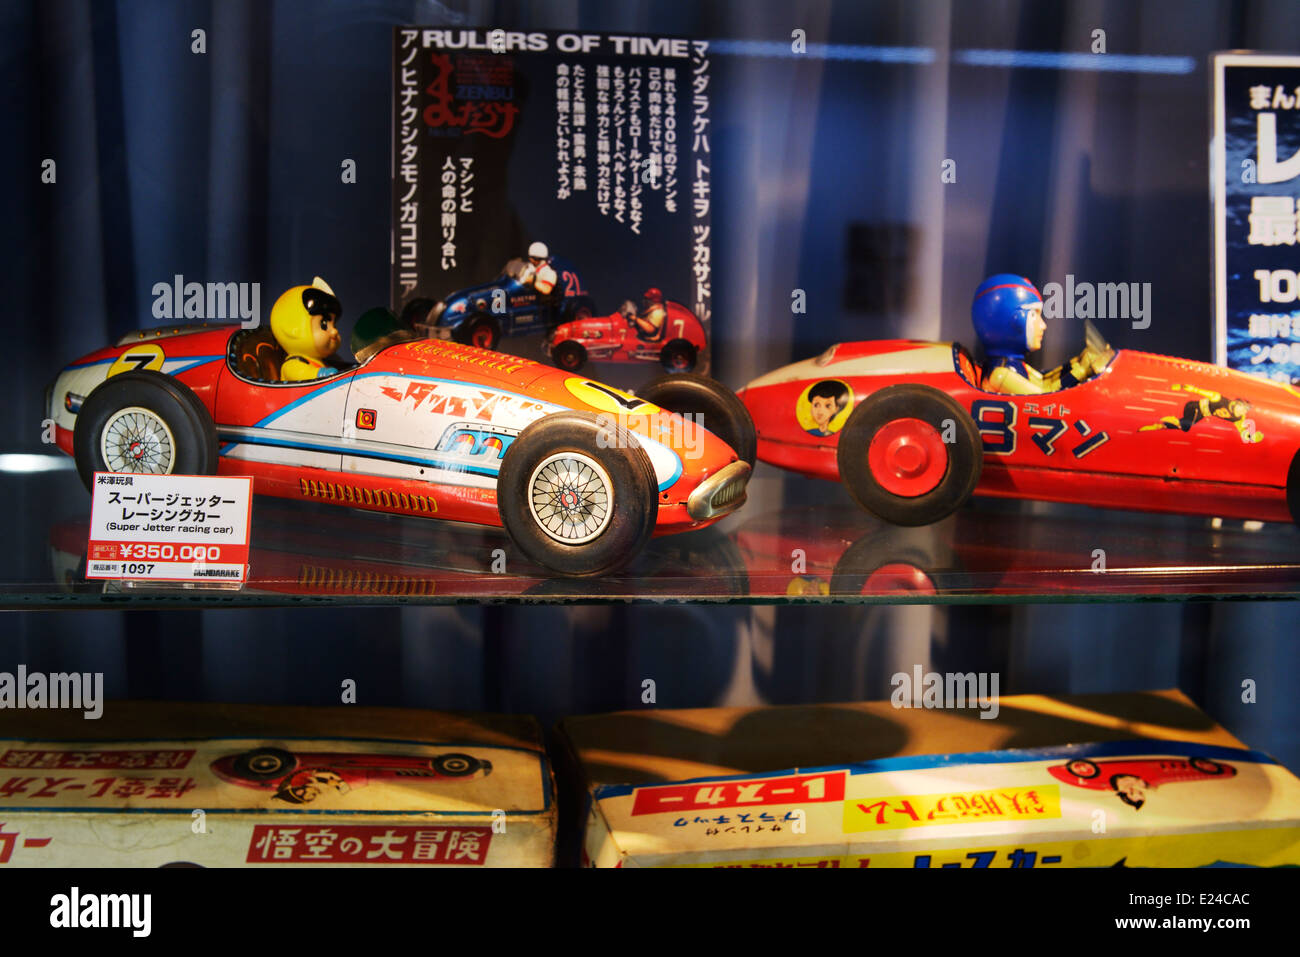 Super Jetter, antique collectible vintage toy race cars at a store in Tokyo, Japan - Stock Image